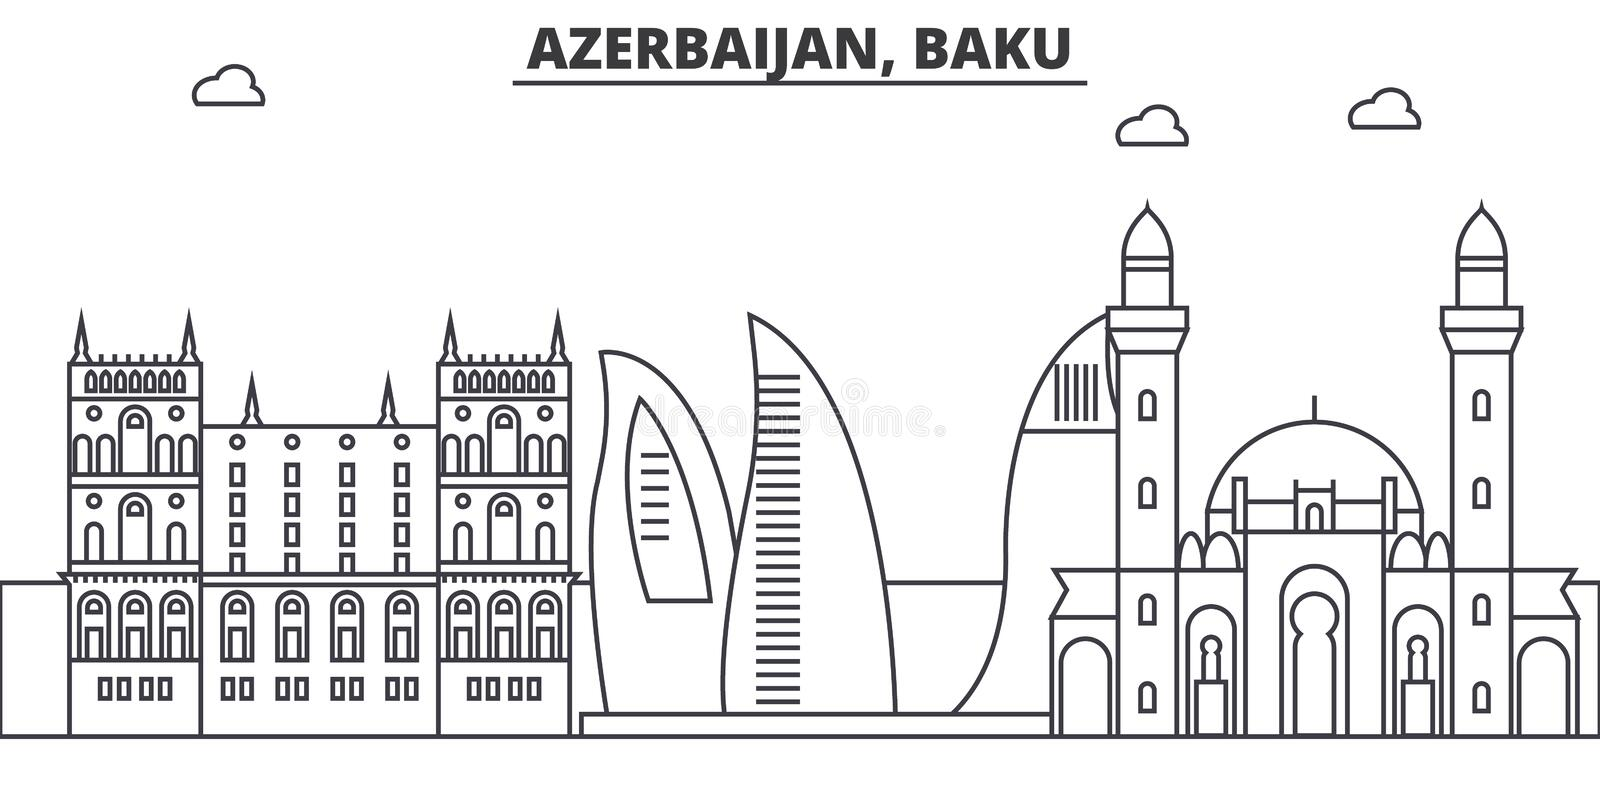 Azerbaijan, Baku architecture line skyline illustration. Linear vector cityscape with famous landmarks, city sights. Design icons. Editable strokes royalty free illustration